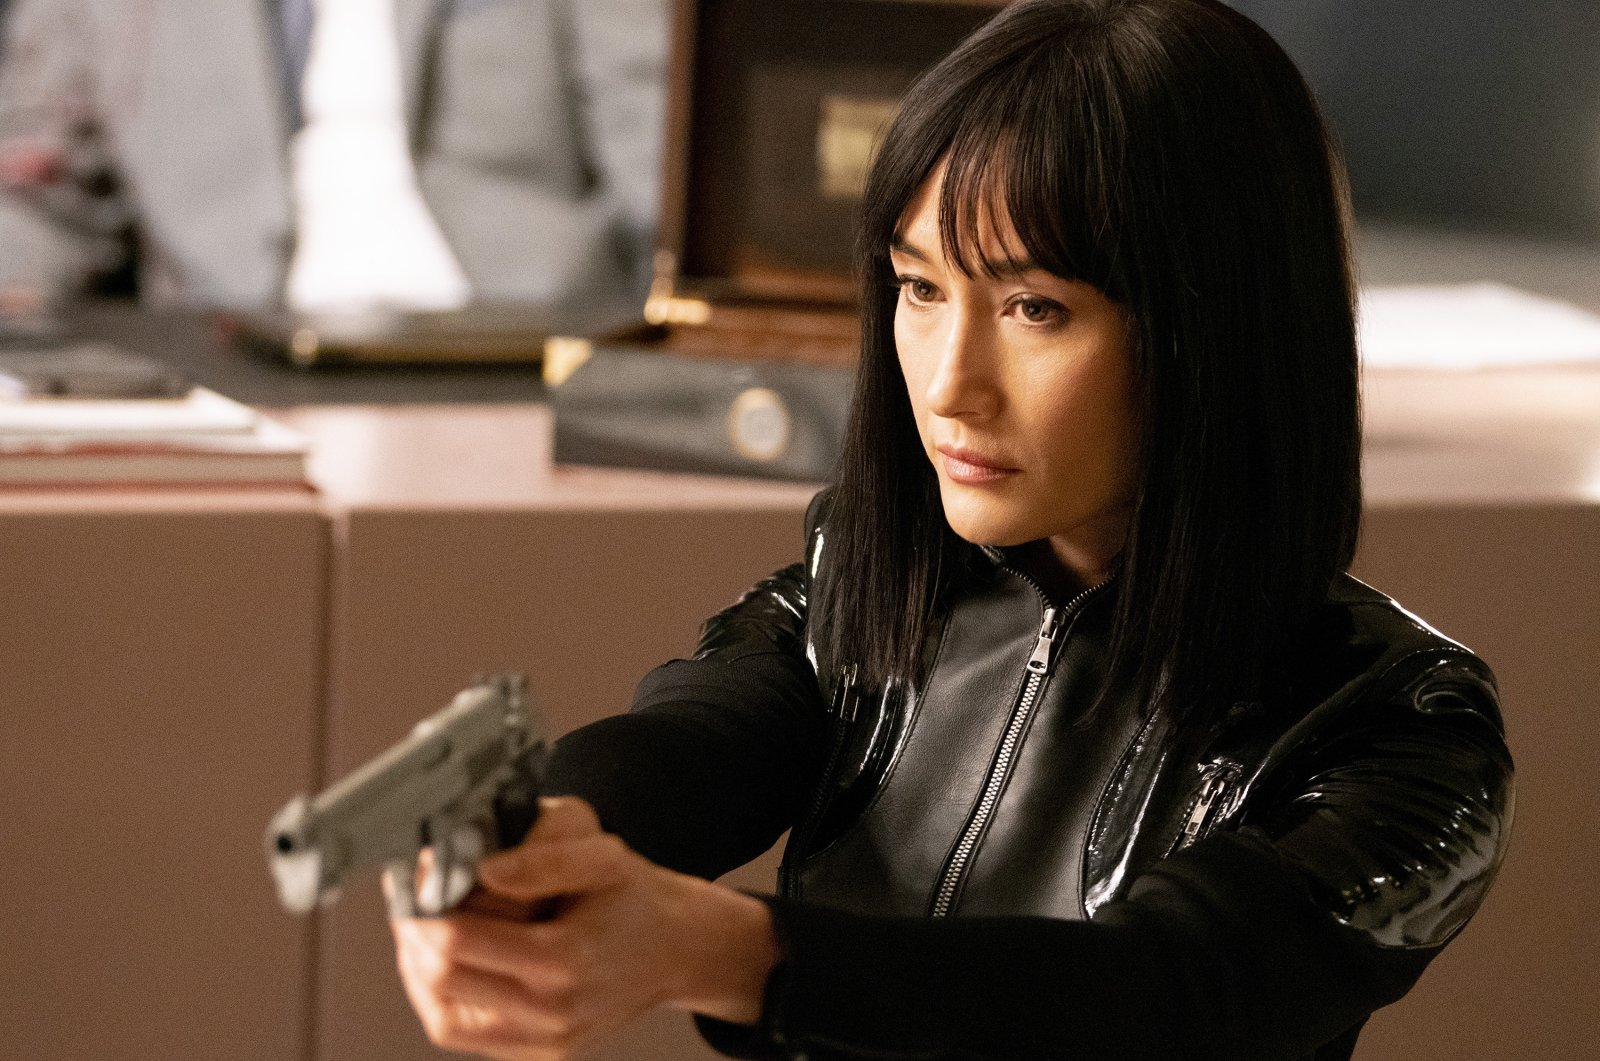 """Maggie Q as Anna,in a scene from the film """"The Protege."""" (Lionsgate via AP)"""